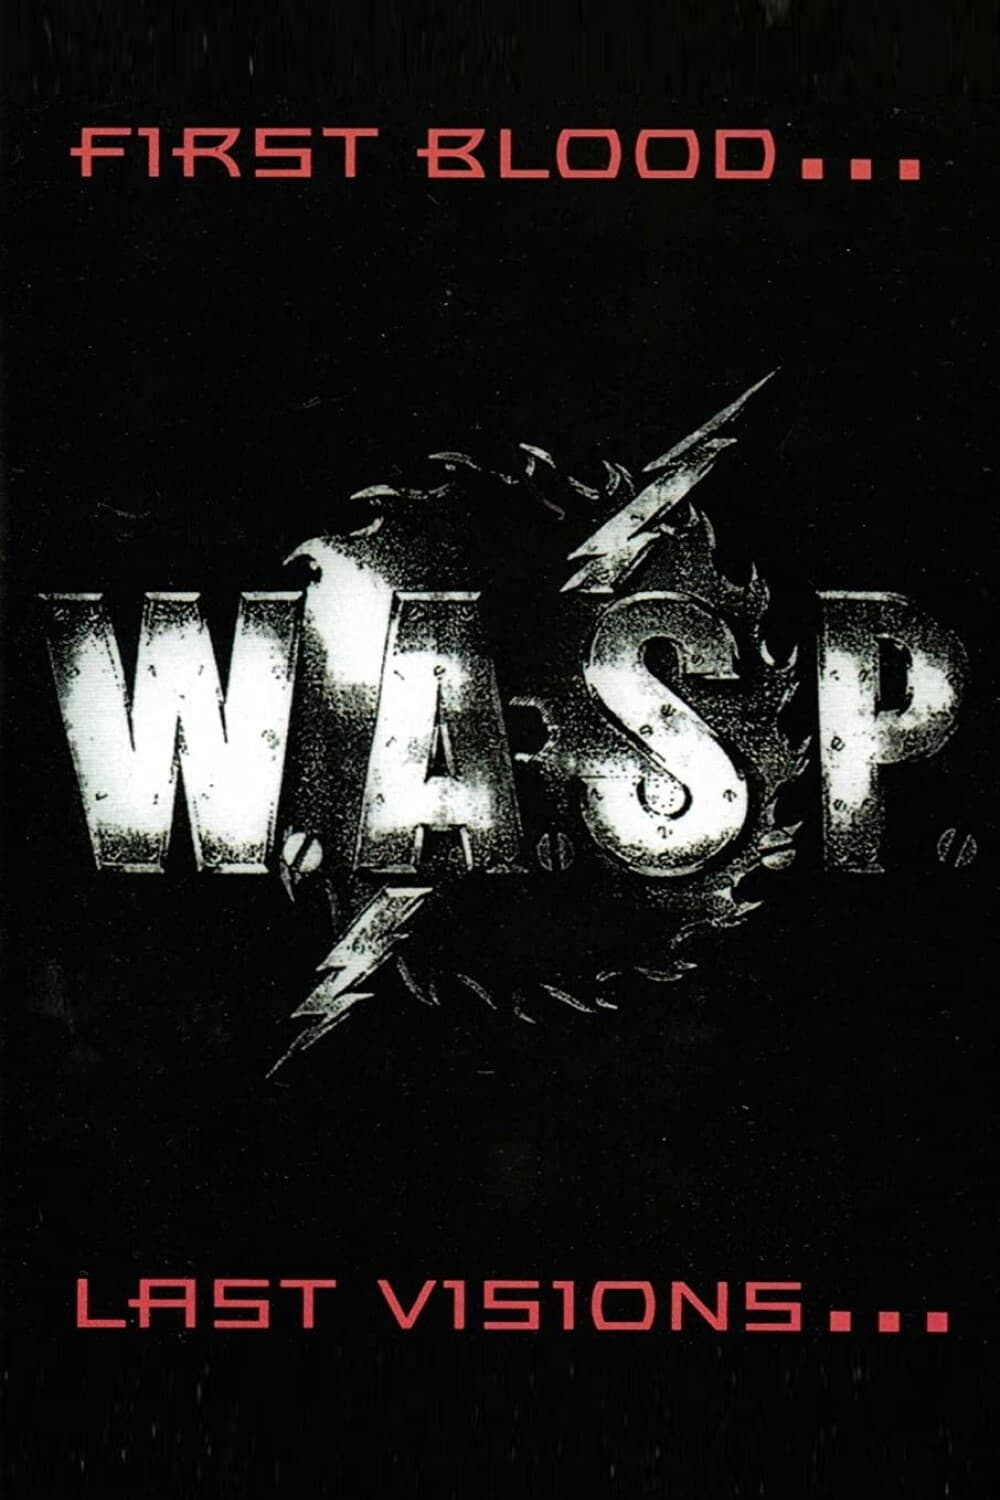 W.A.S.P.: First Blood... Last Visions... (1993)